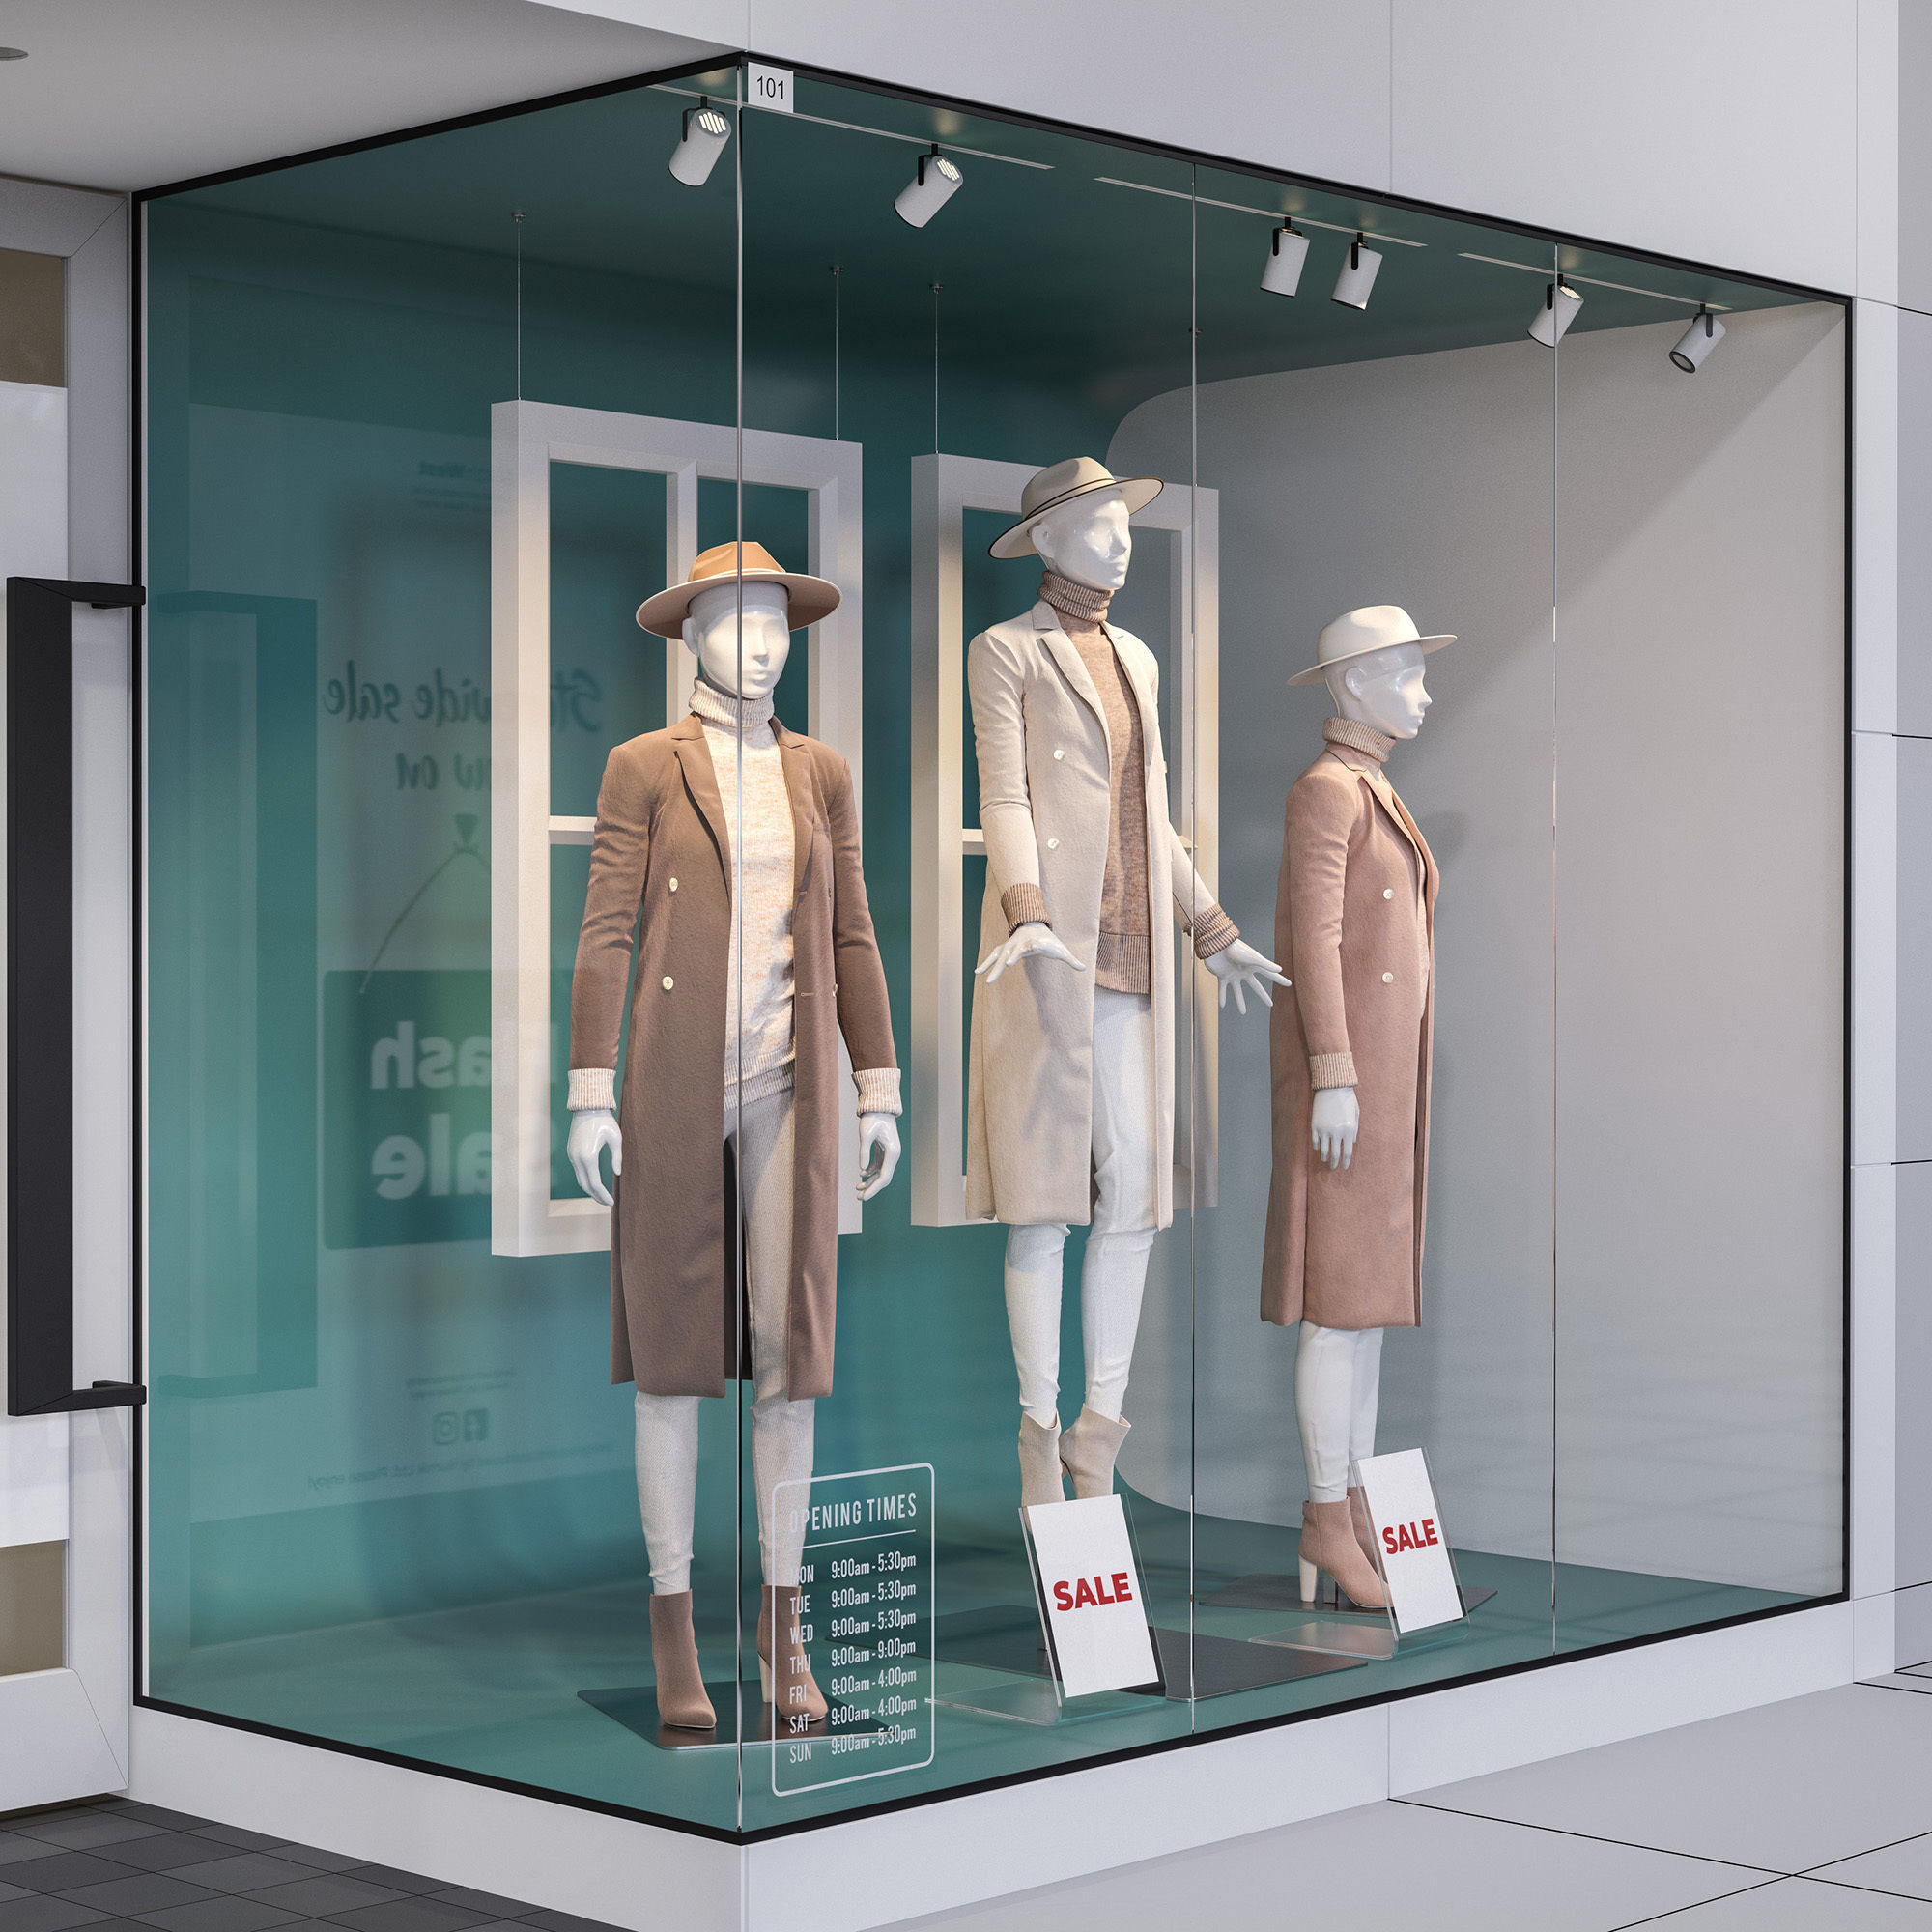 Shop front with female mannequin